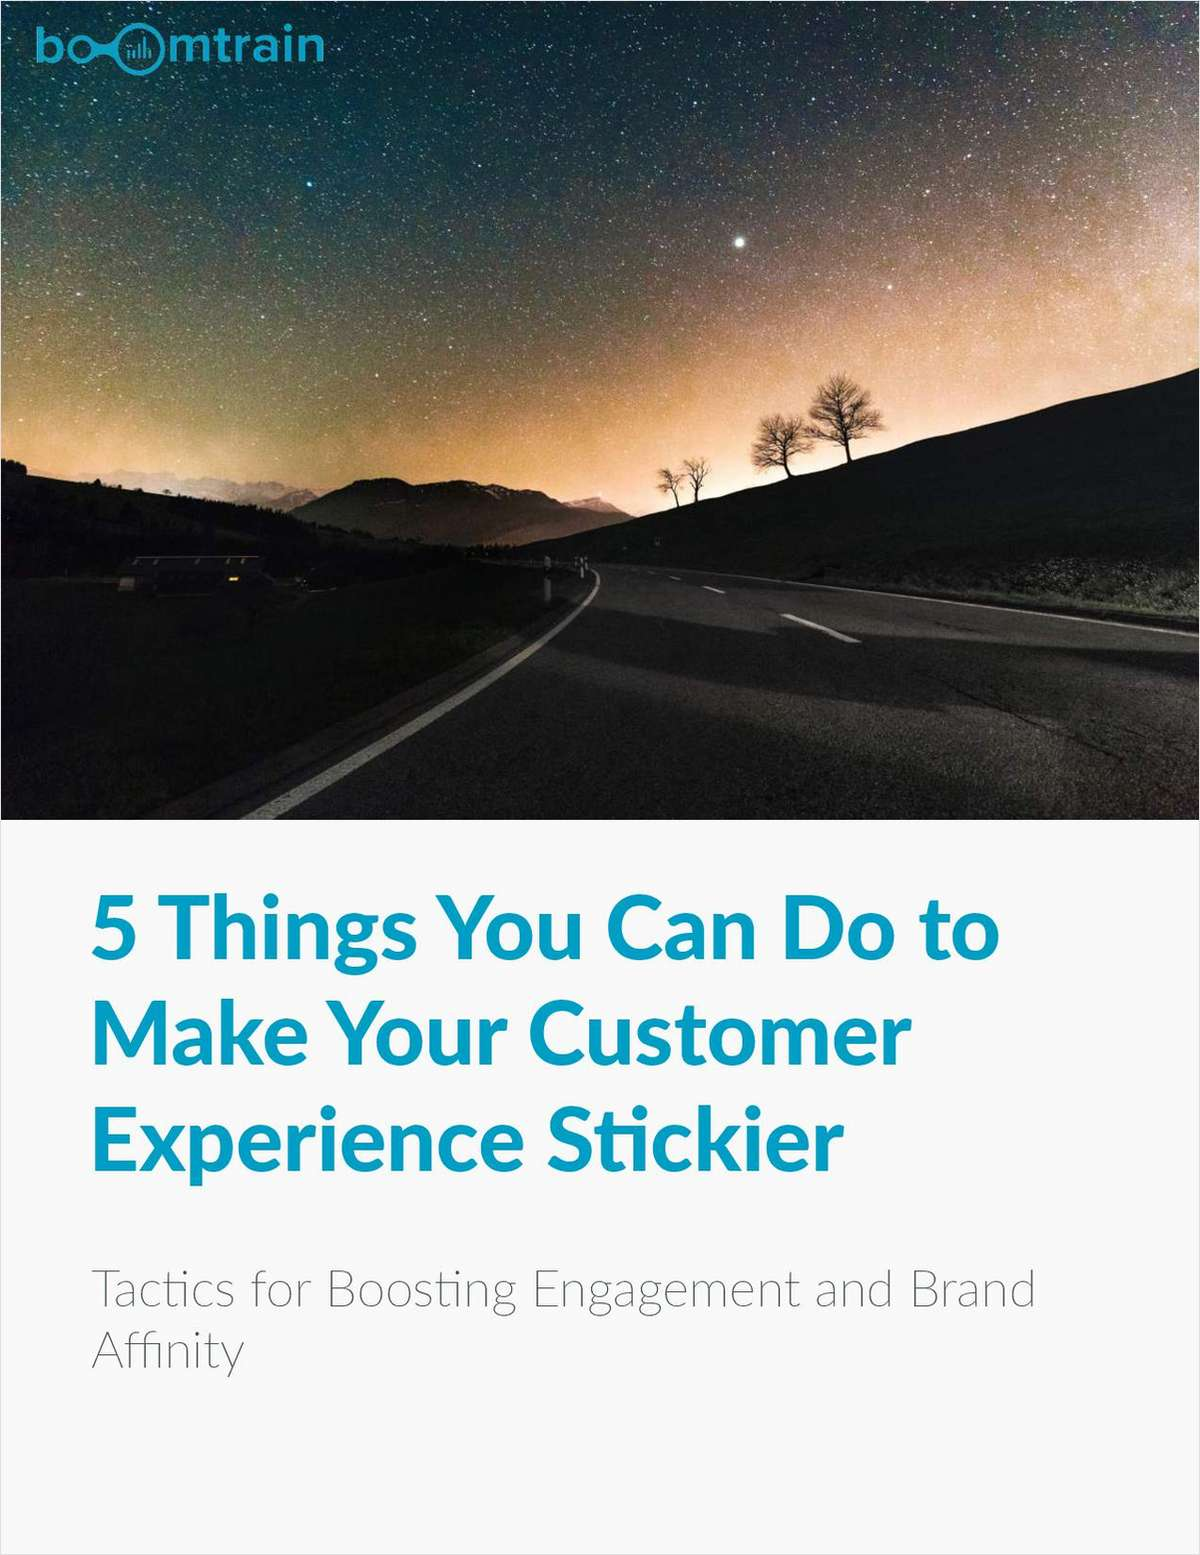 5 Things You Can Do to Make Your Customer Experience Stickier